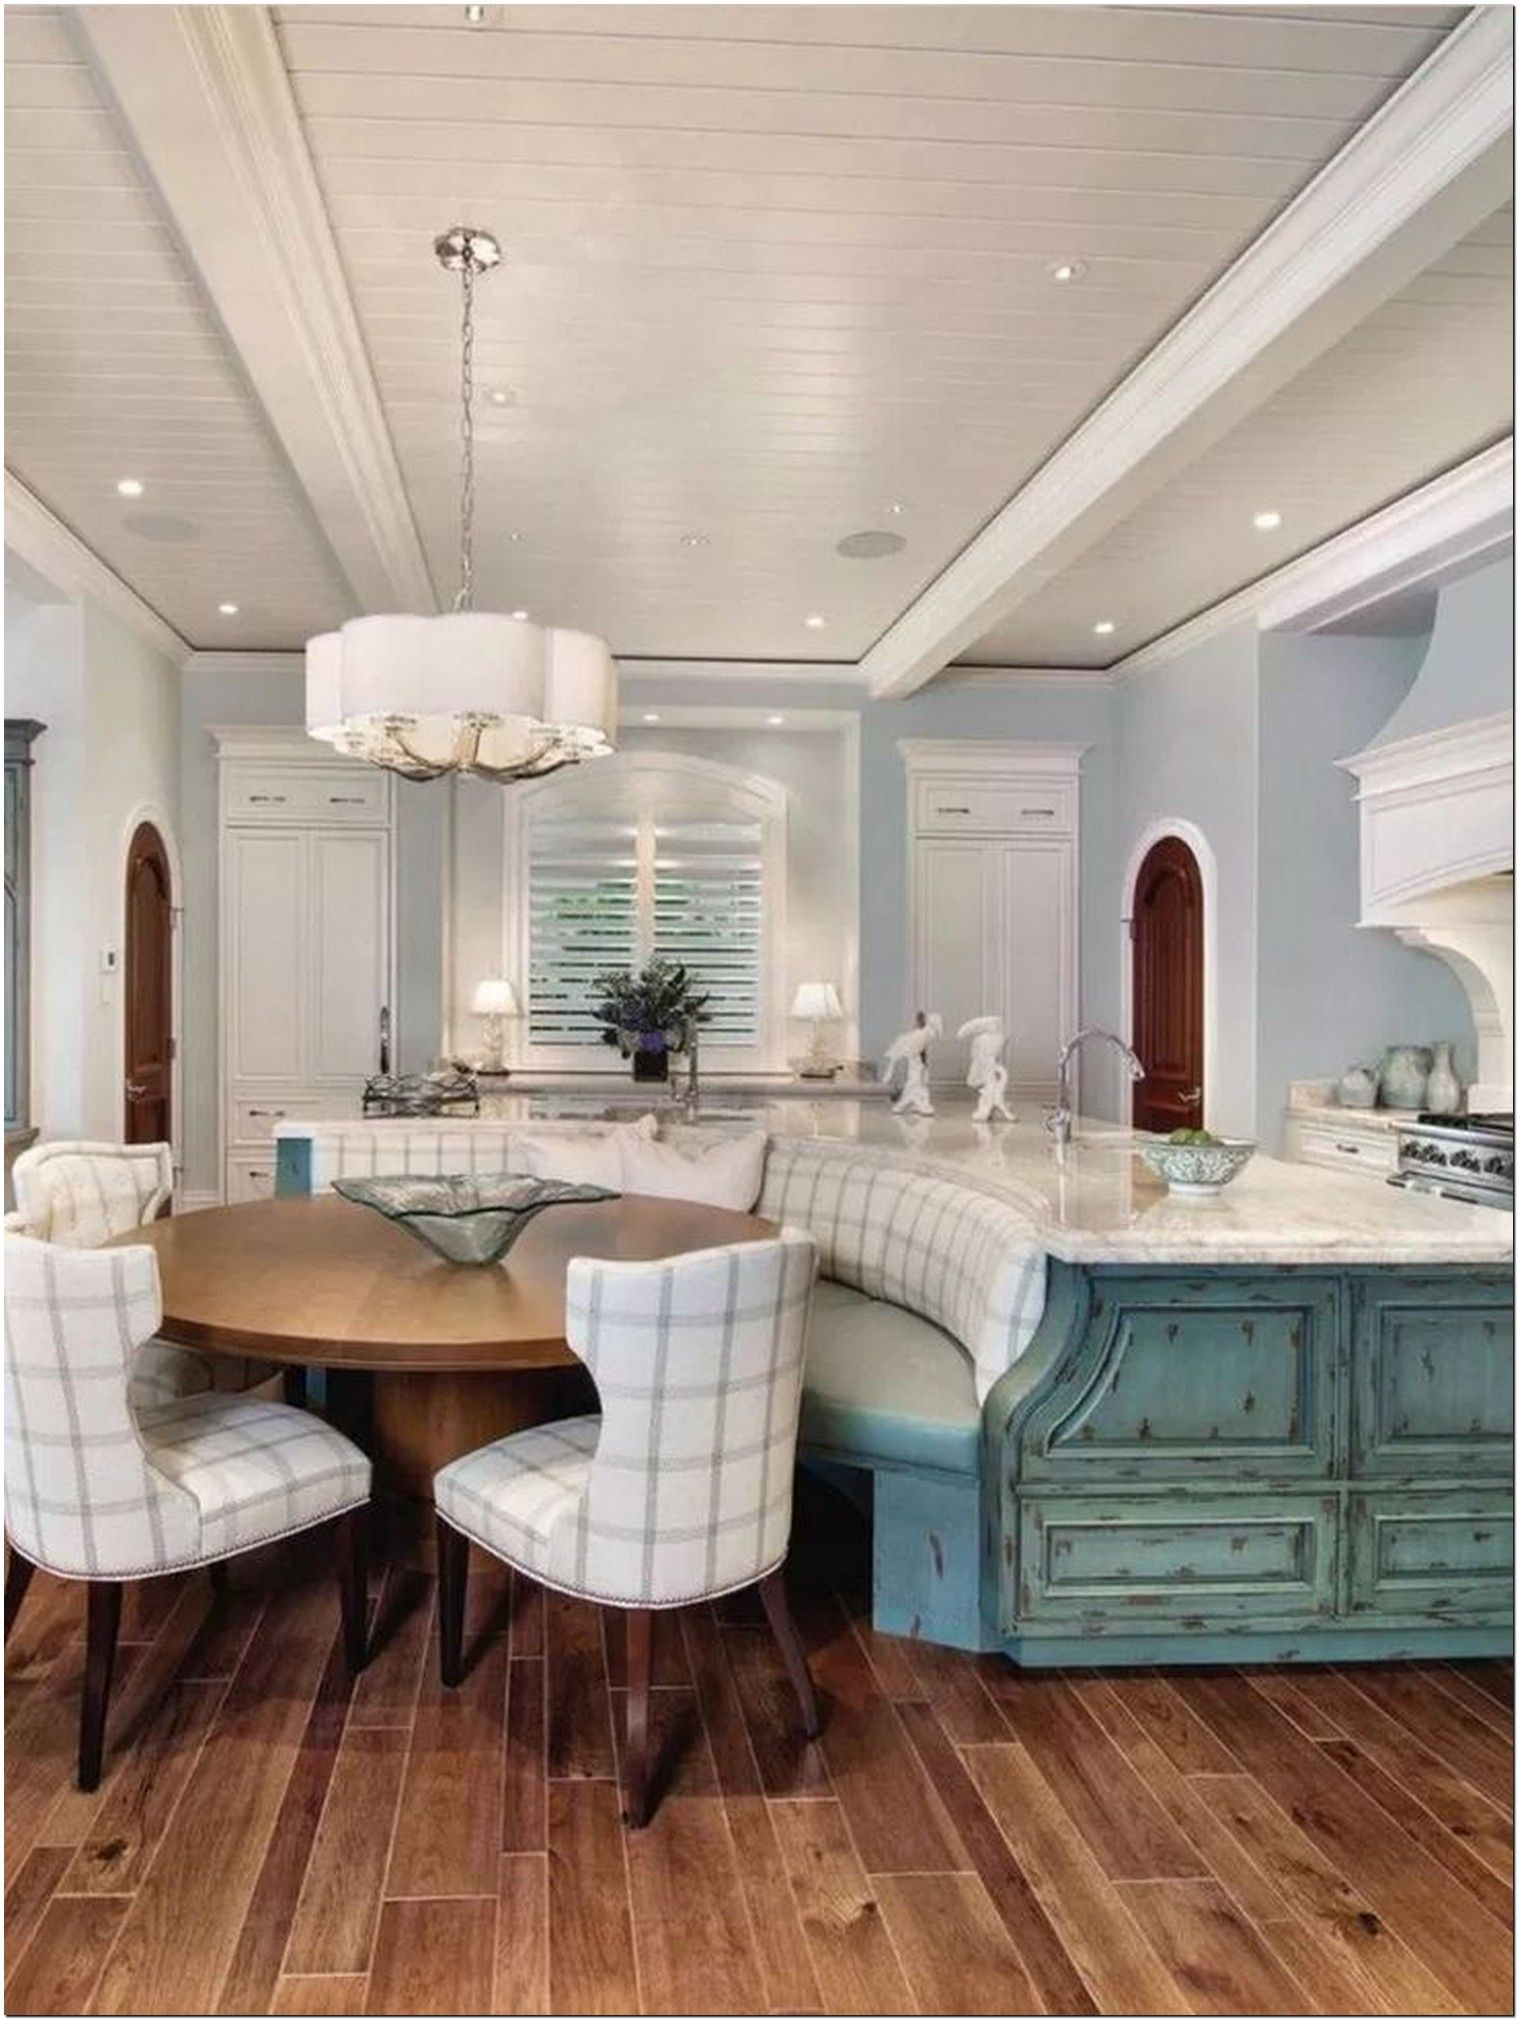 40 the most beautiful kitchens ever timeless design on the most beautiful kitchens ever id=53059